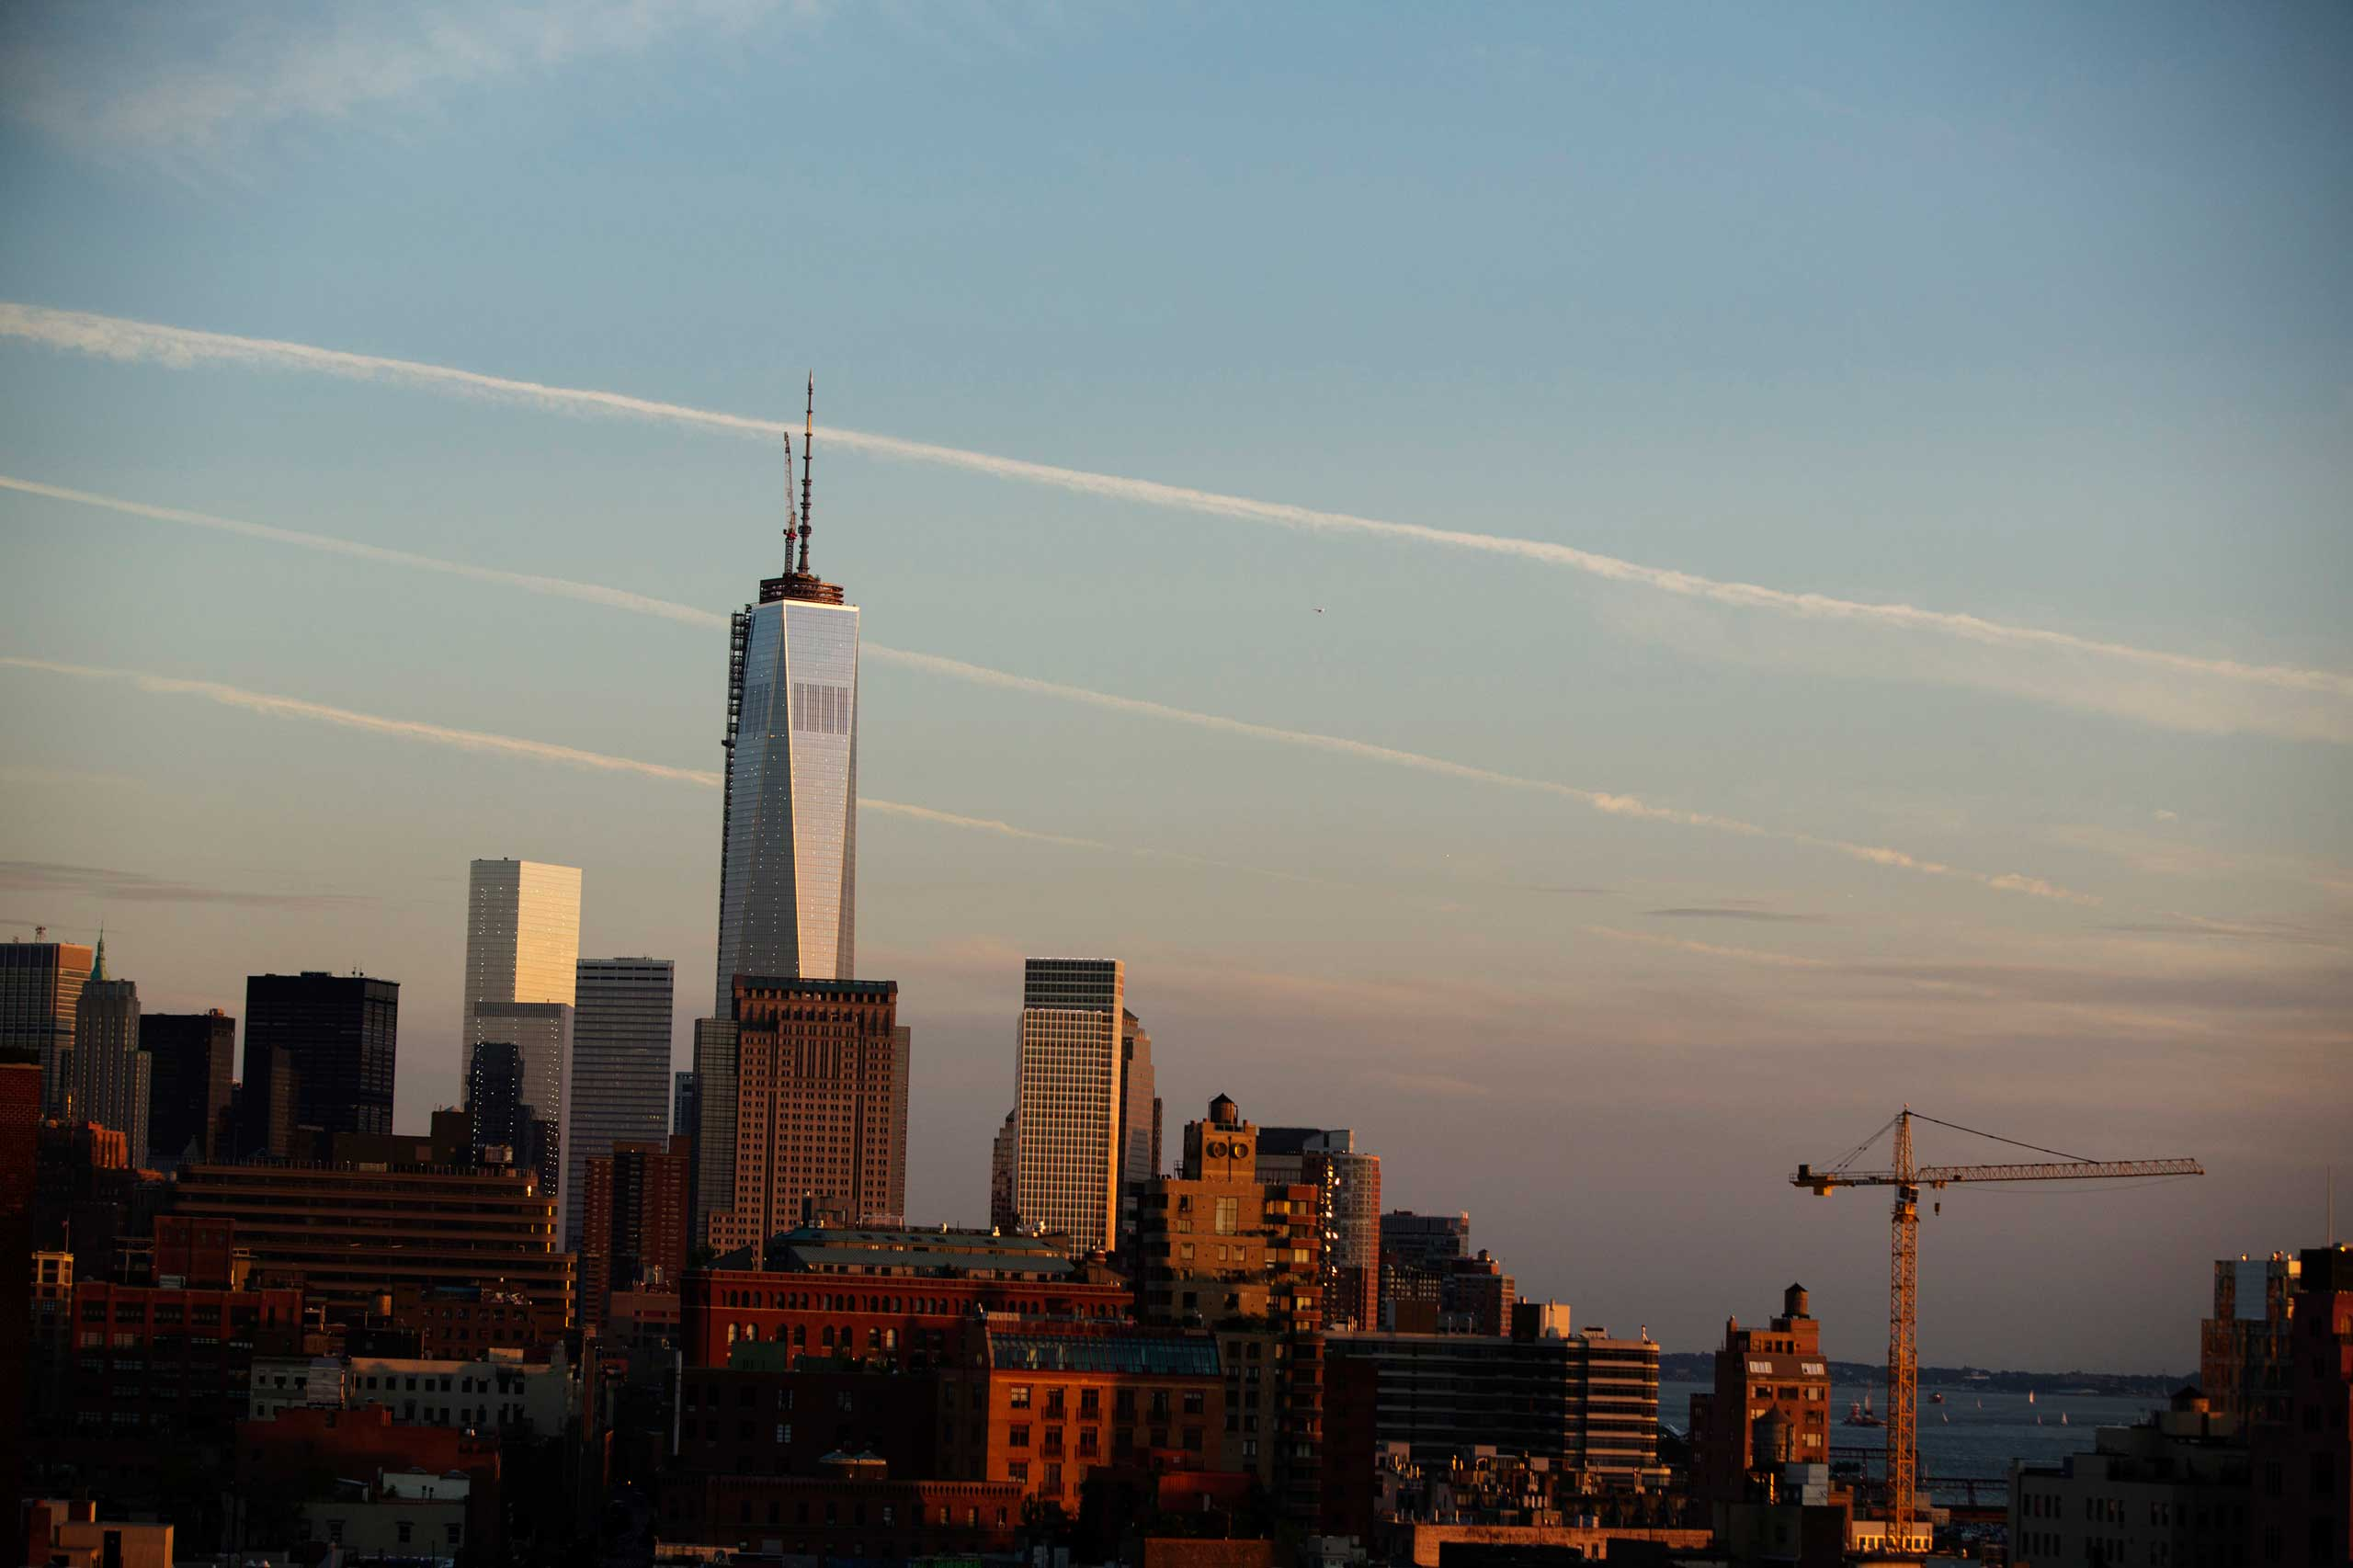 2013 One World Trade Center rises above the Manhattan skyline as seen from the pool at the Gansevoort Meatpacking NYC on June 12, 2013.